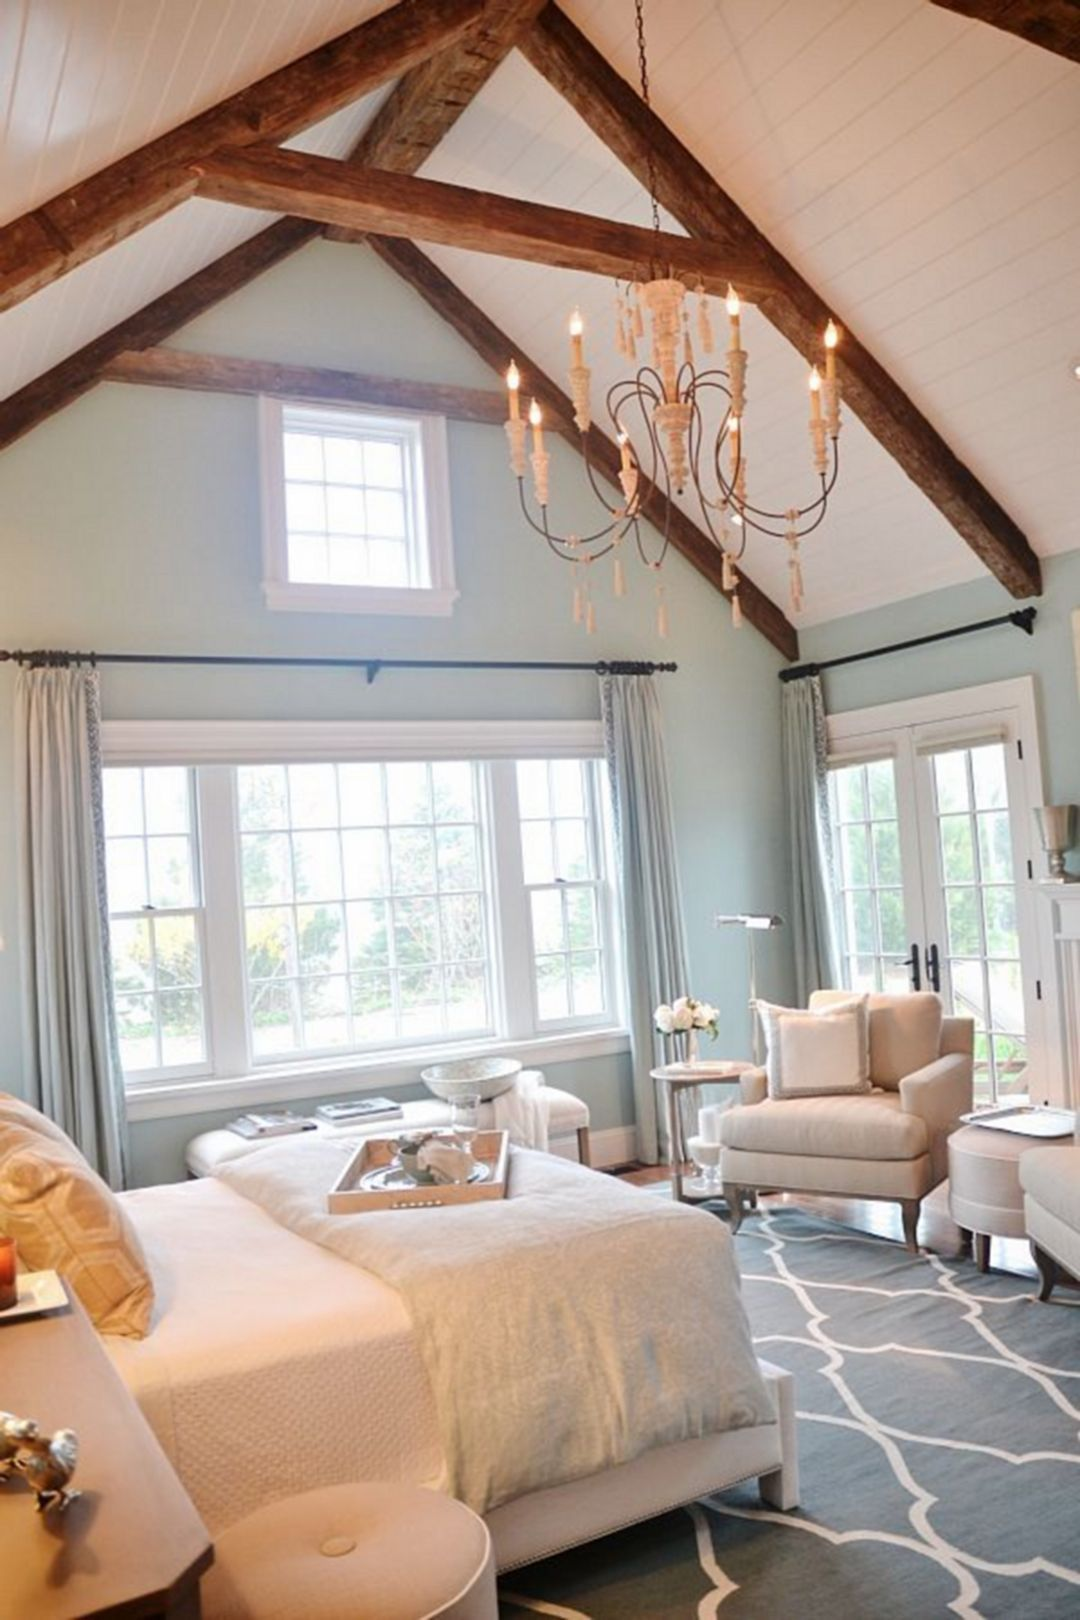 30 vaulted ceiling bedroom design ideas for inspiration - Inspirational Vaulted Ceiling Bedroom